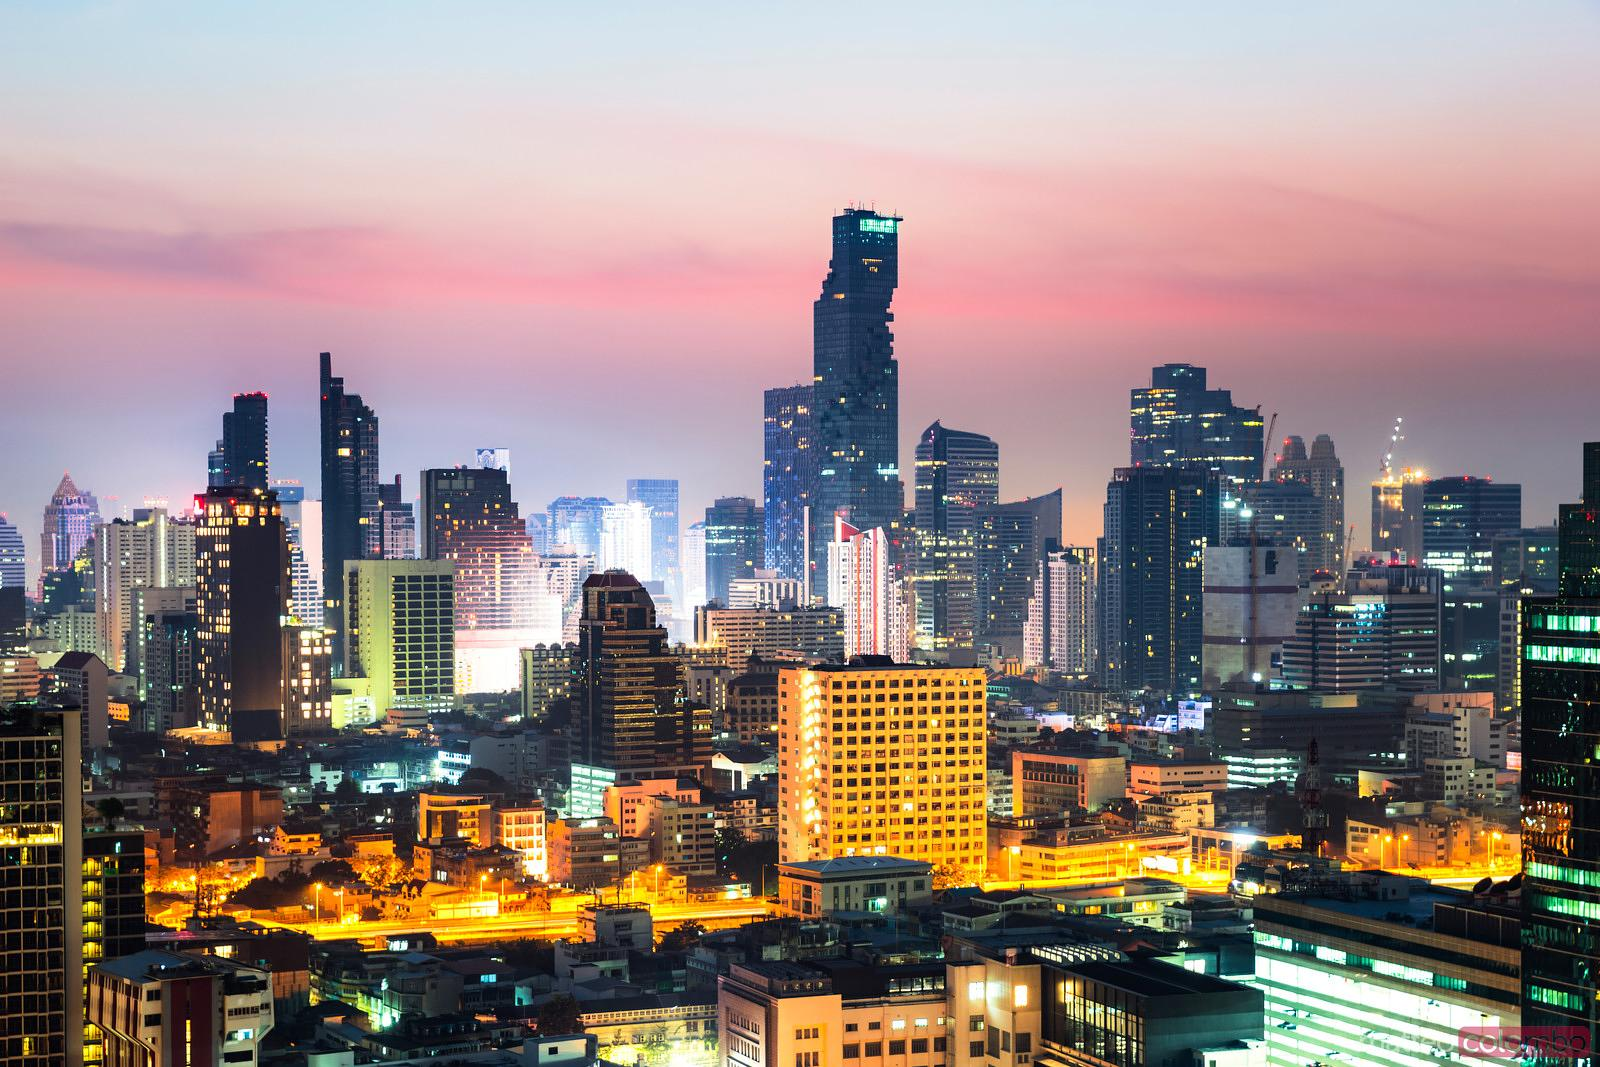 City skyline at sunrise, Bangkok, Thailand